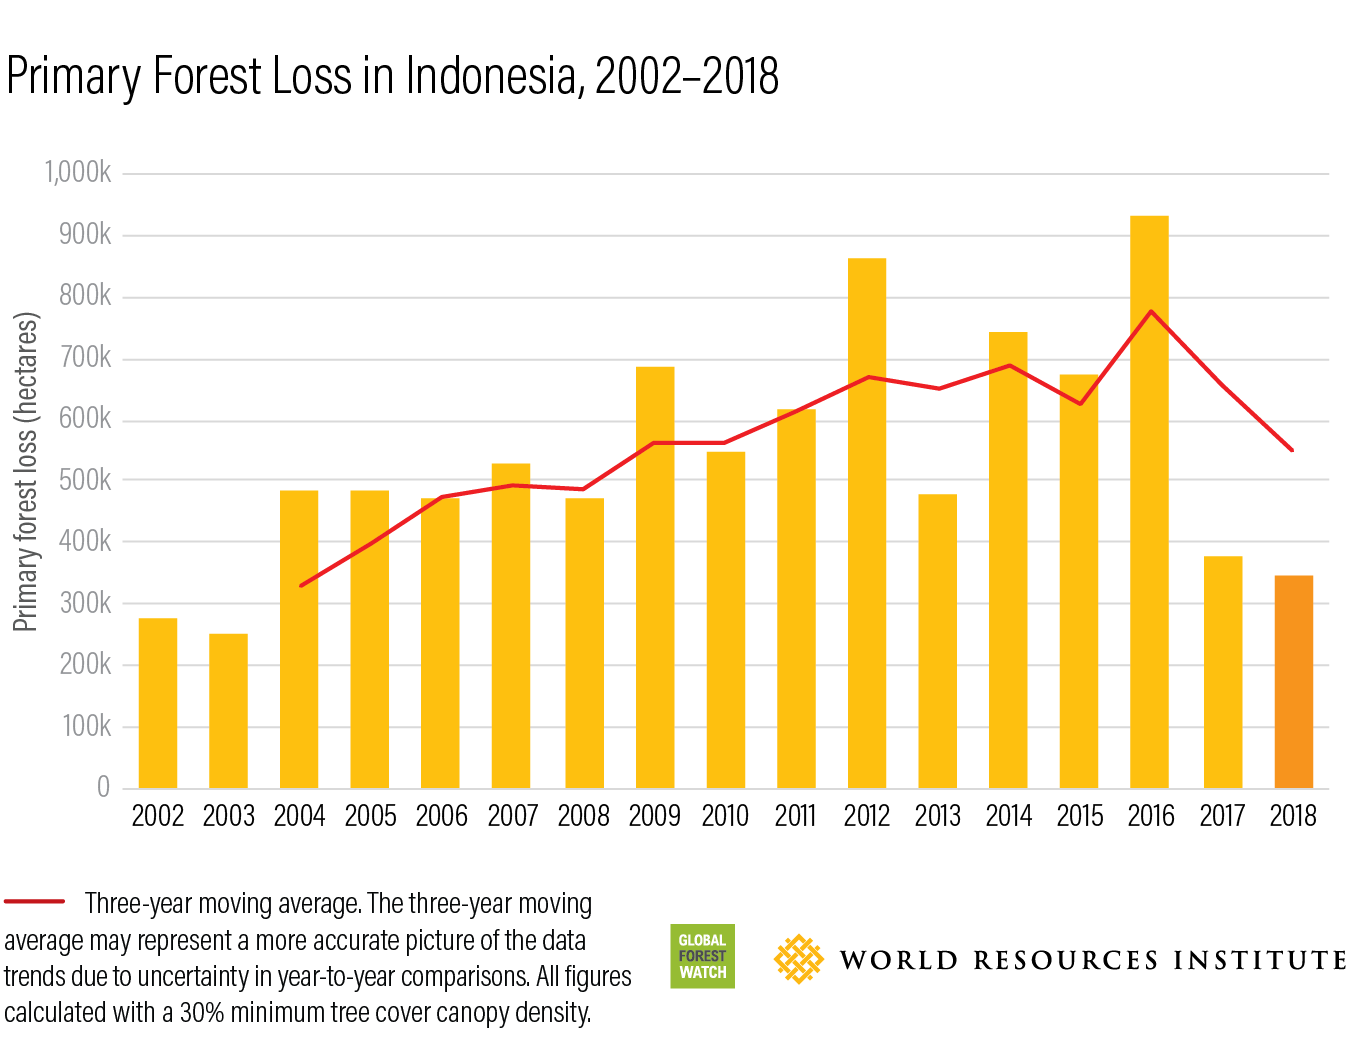 Indonesia Massively Reduced Primary Forest Loss